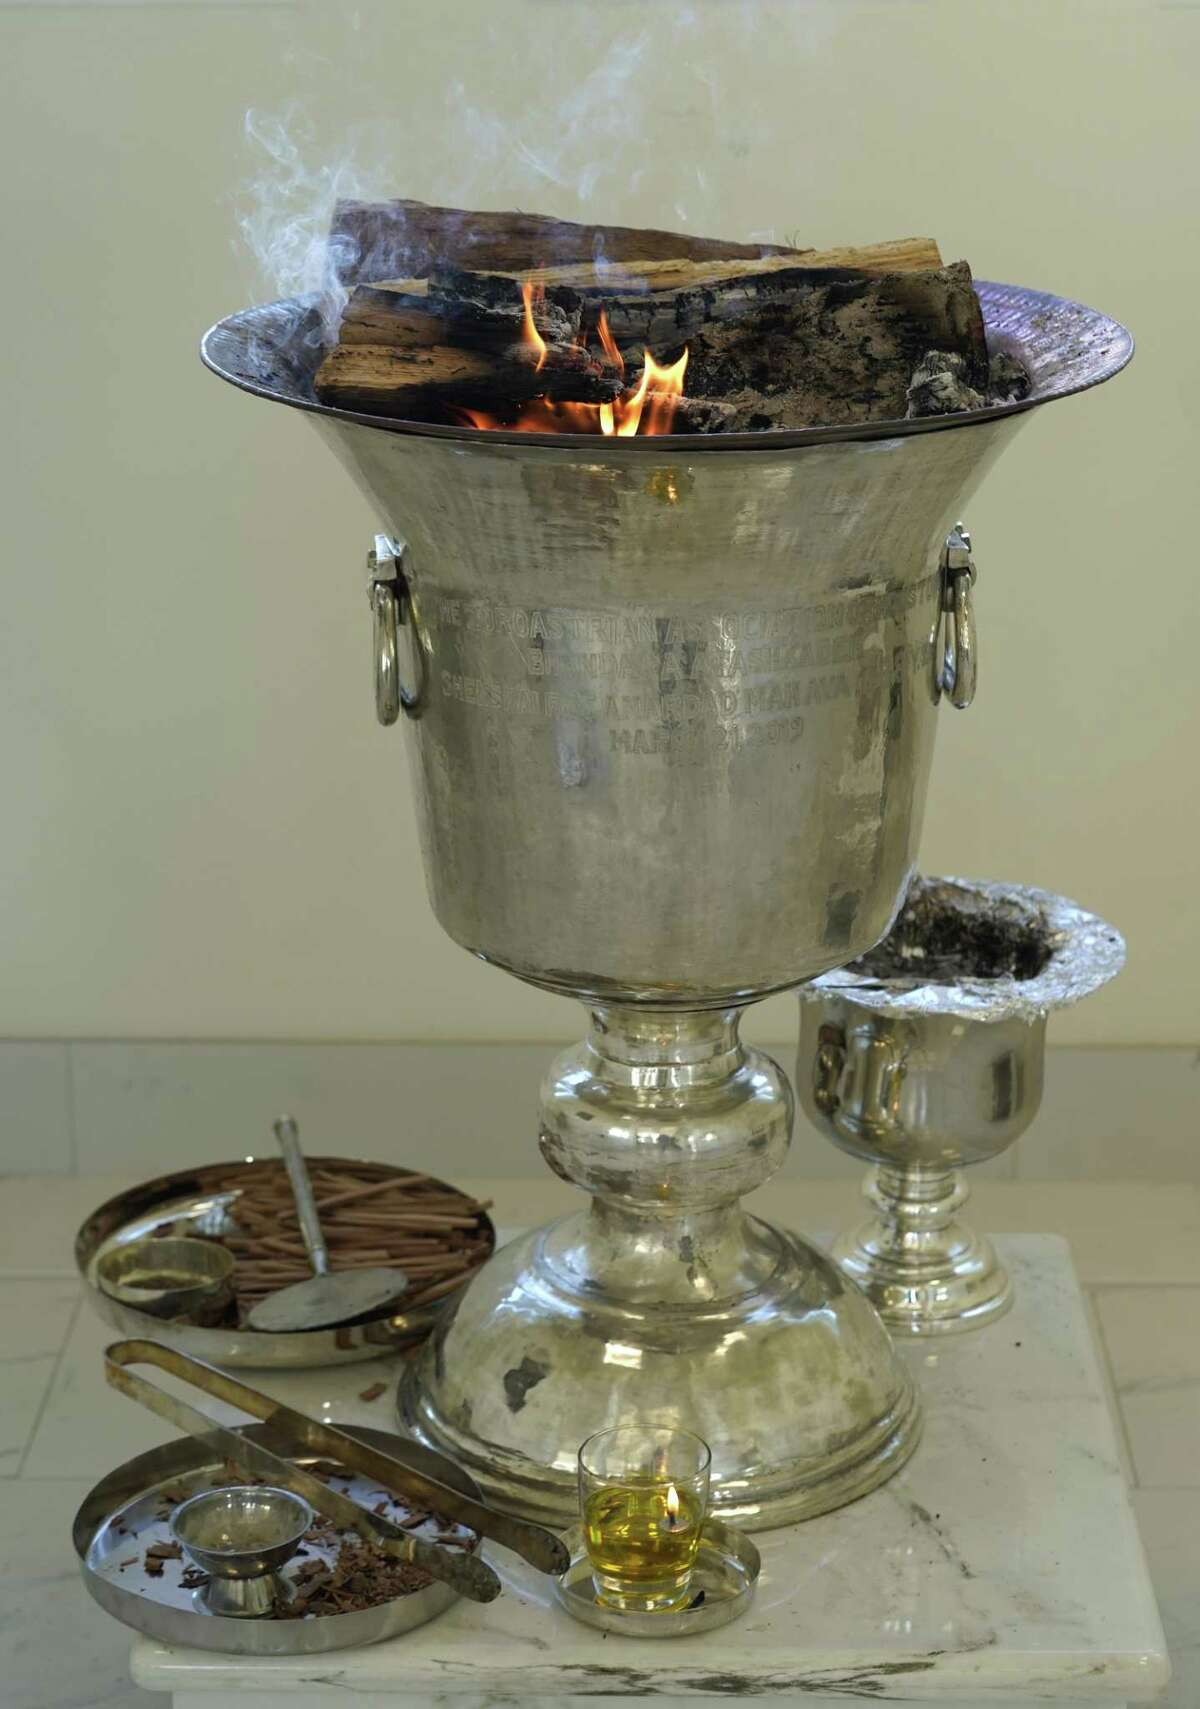 Fire is Zoroastrians' most important symbol.